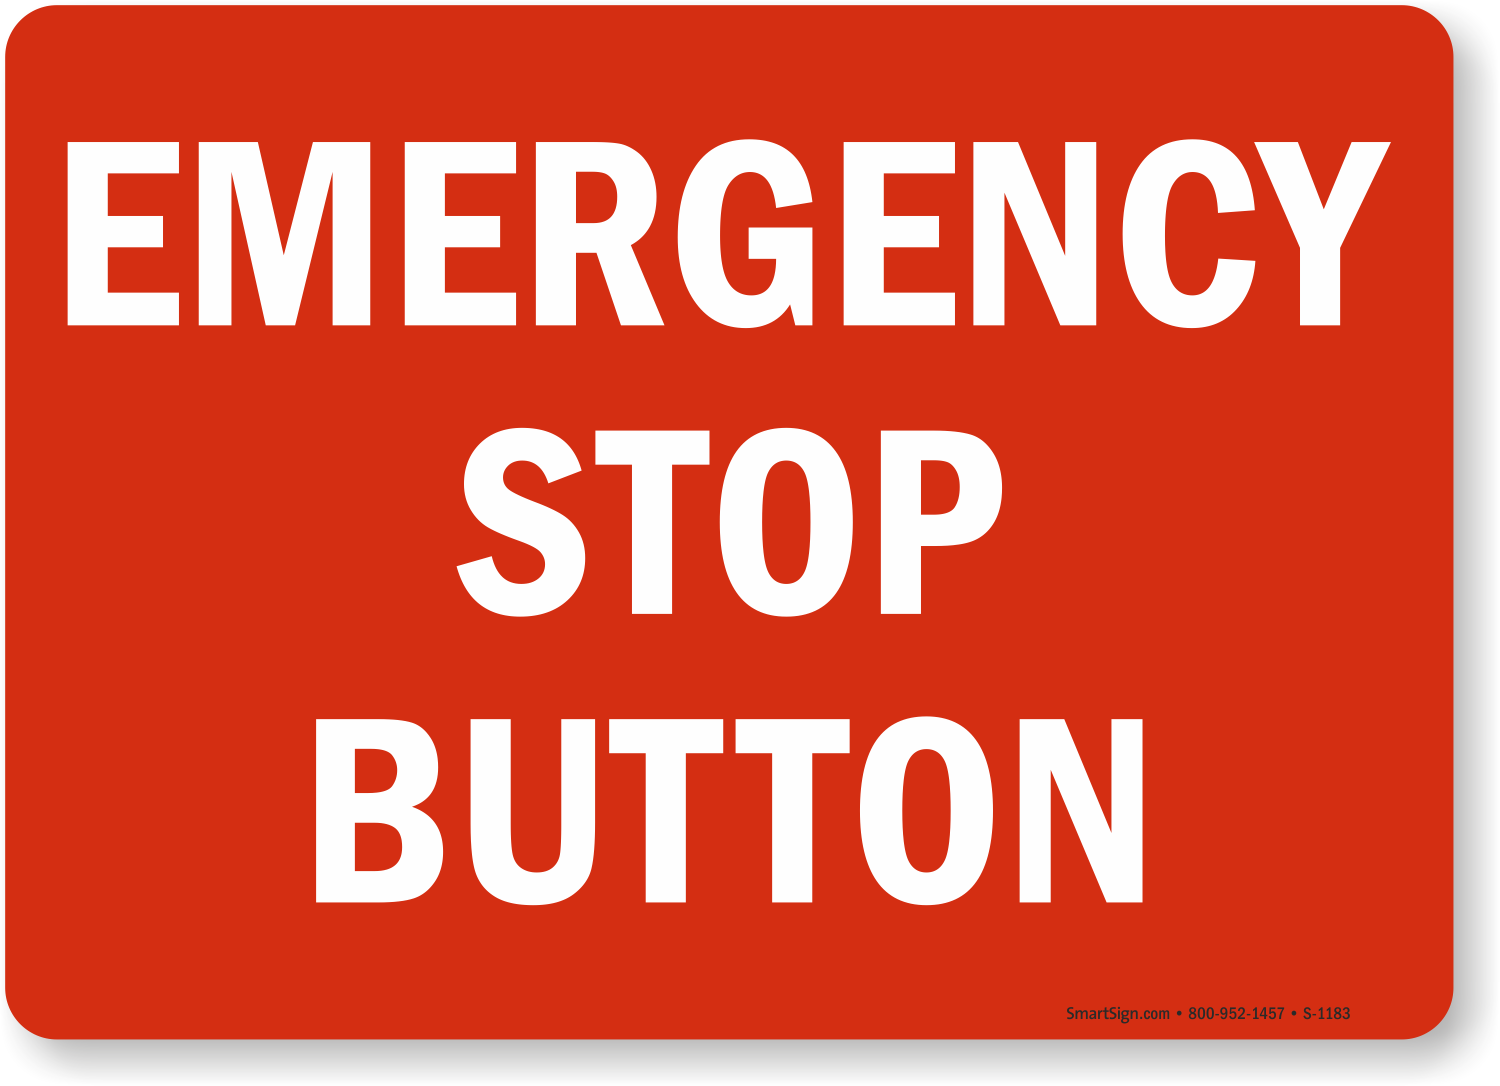 Emergency Stop Button Signs Electrical Equipment Warning Signs Sku